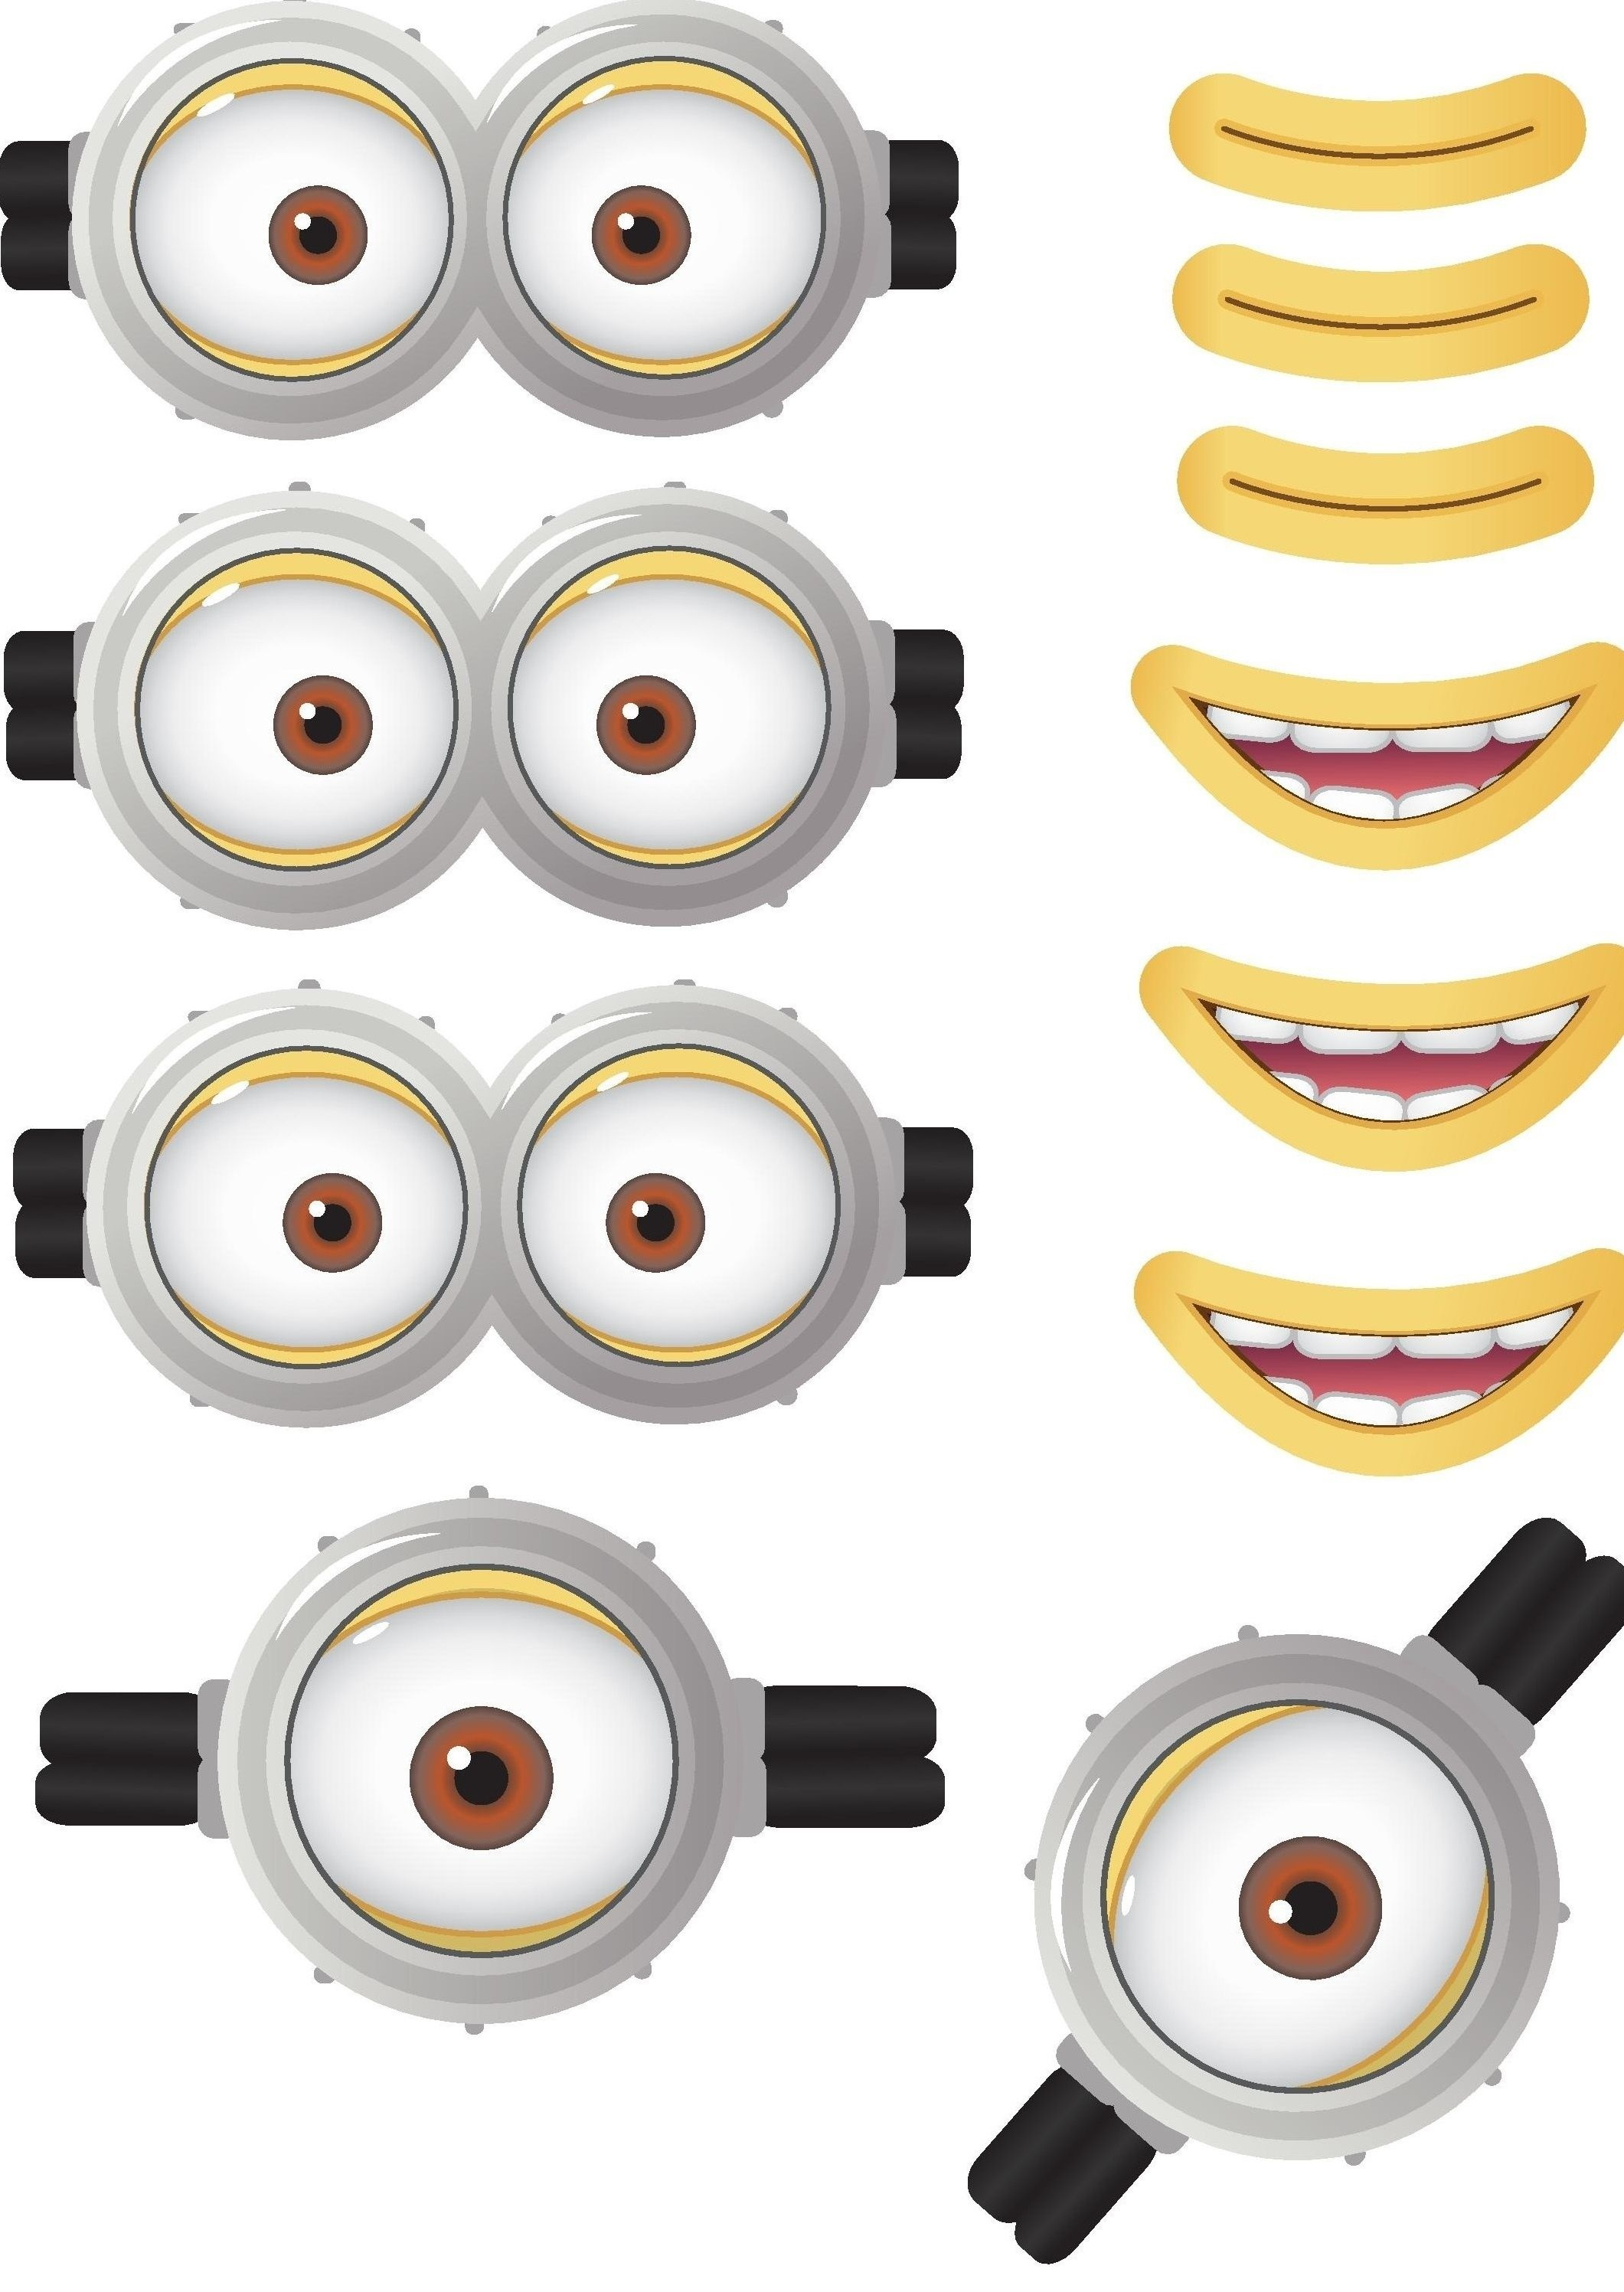 Minion Goggles Mouths Free Printable Despicable Me 2 Picture | Party - Free Minion Printables